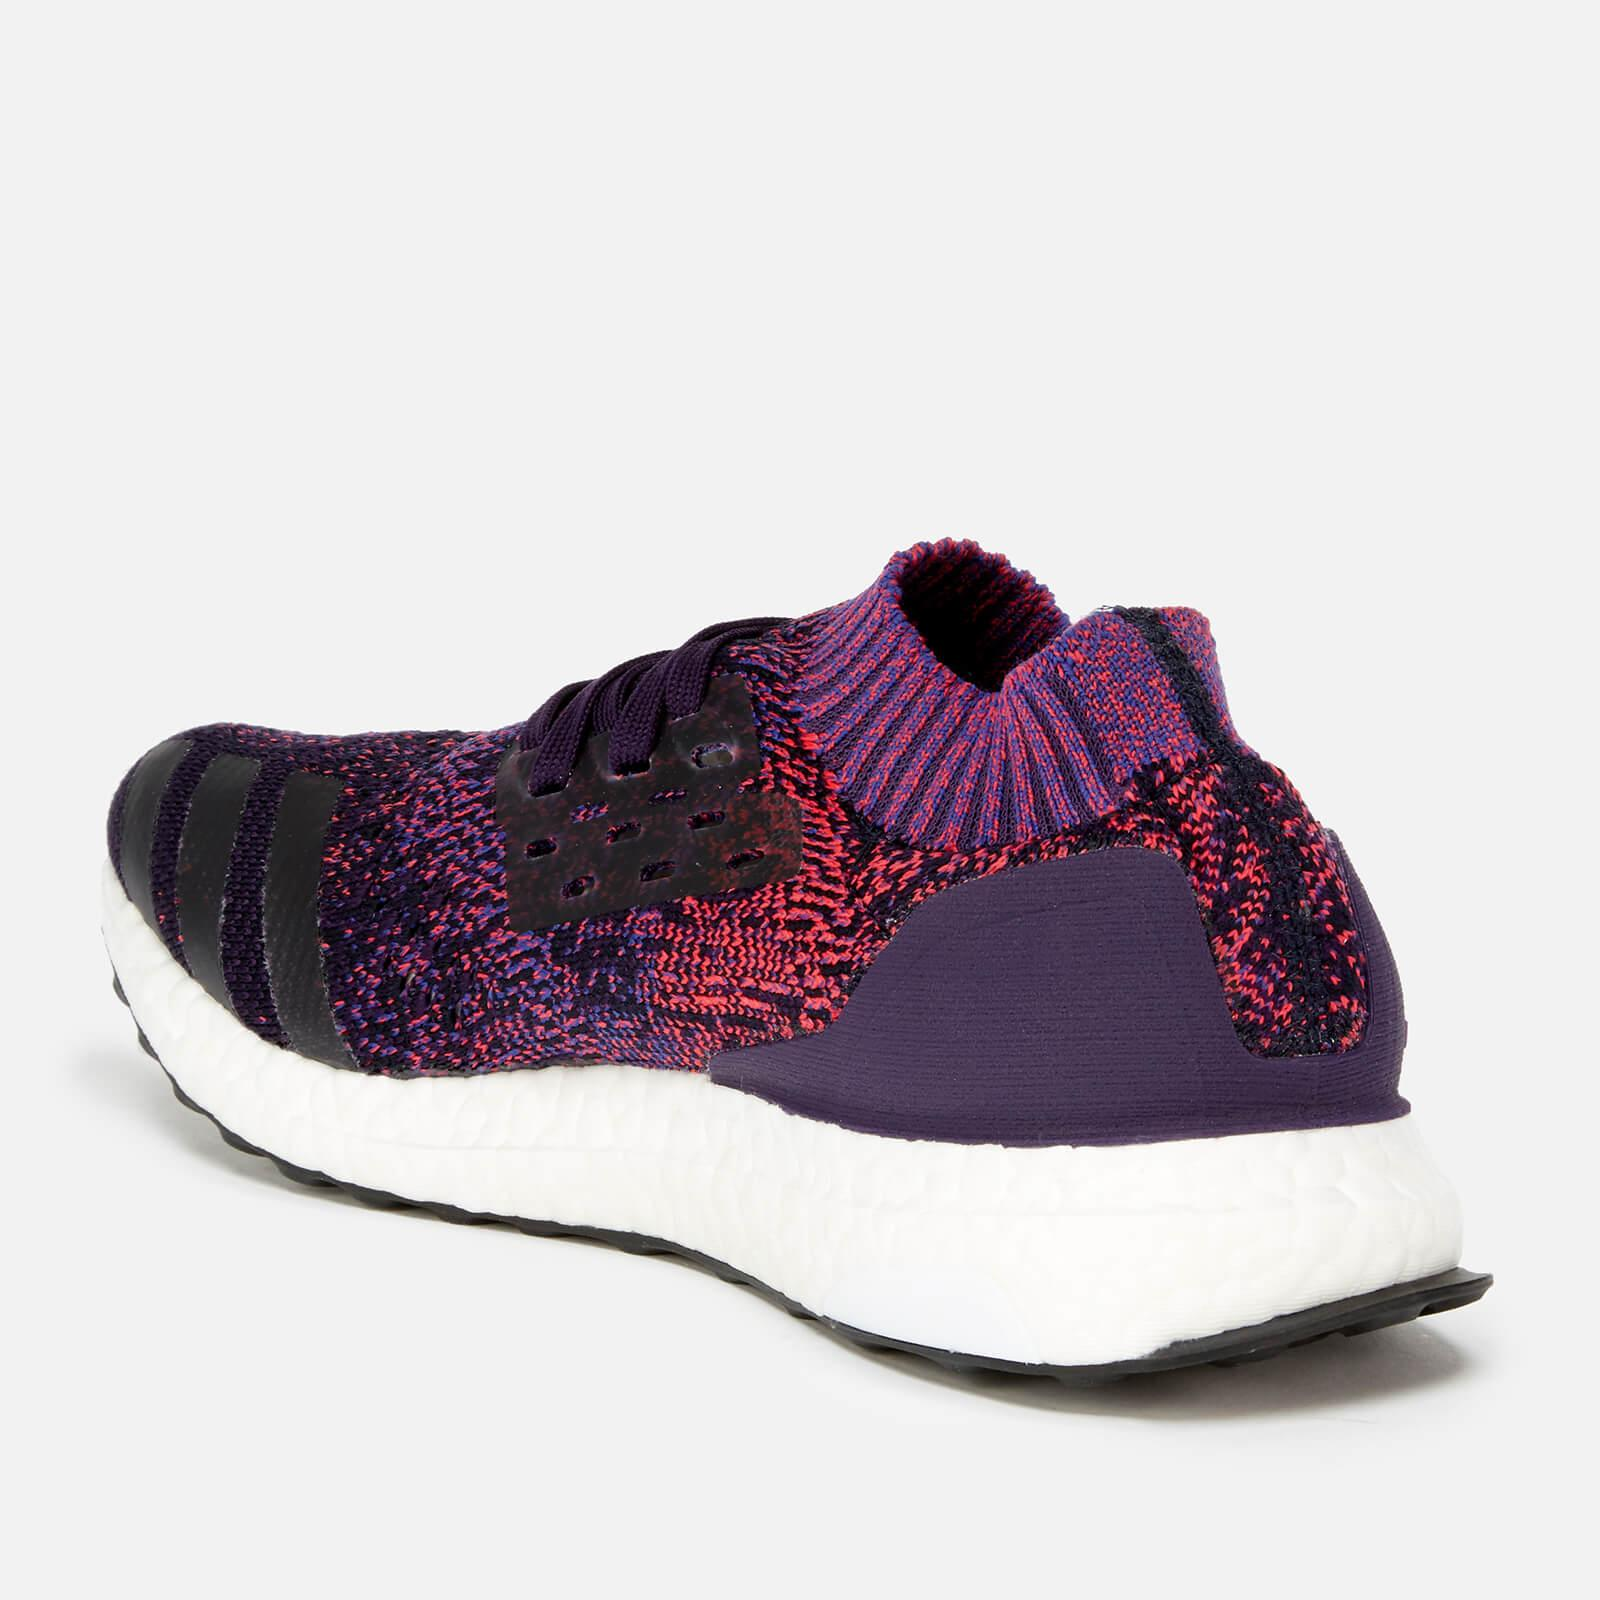 new style 4f435 4a7f0 adidas Ultraboost Uncaged Trainers in Purple - Lyst